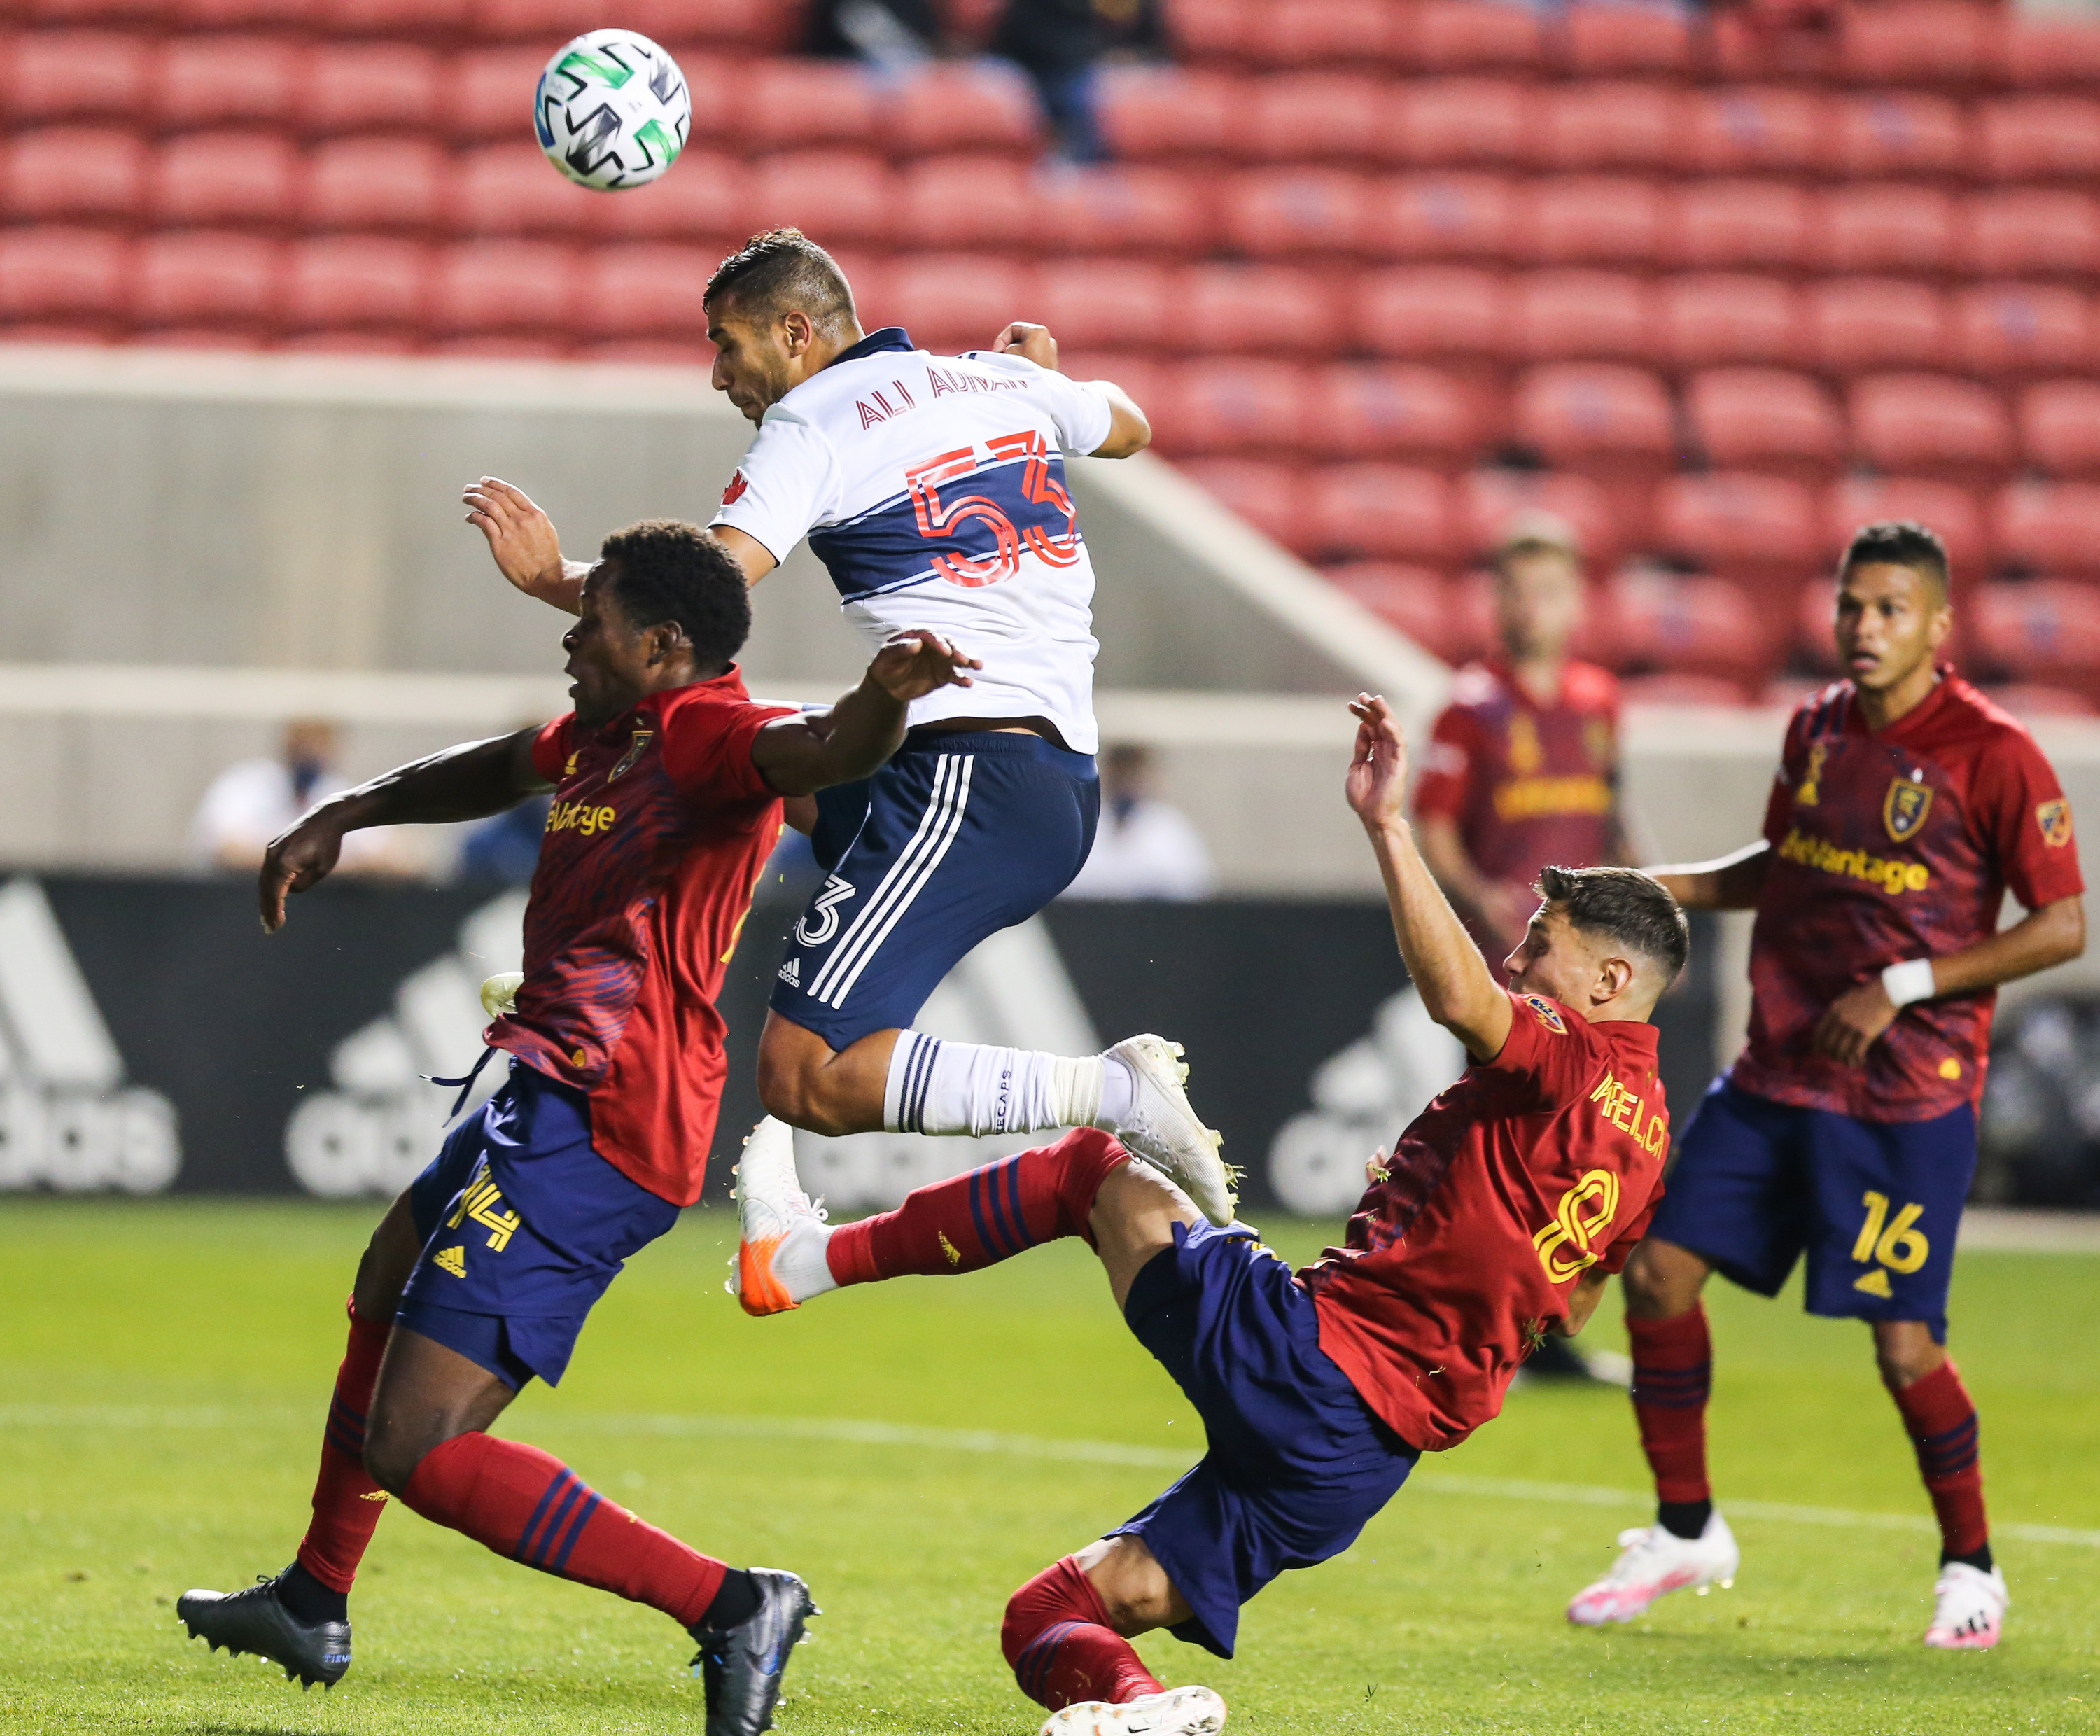 Vancouver Whitecaps defender Ali Adnan (53) attempts a shot against the Real Salt Lake defense during an MLS soccer game at Rio Tinto Stadium in Sandy on Saturday, Sept. 19, 2020.